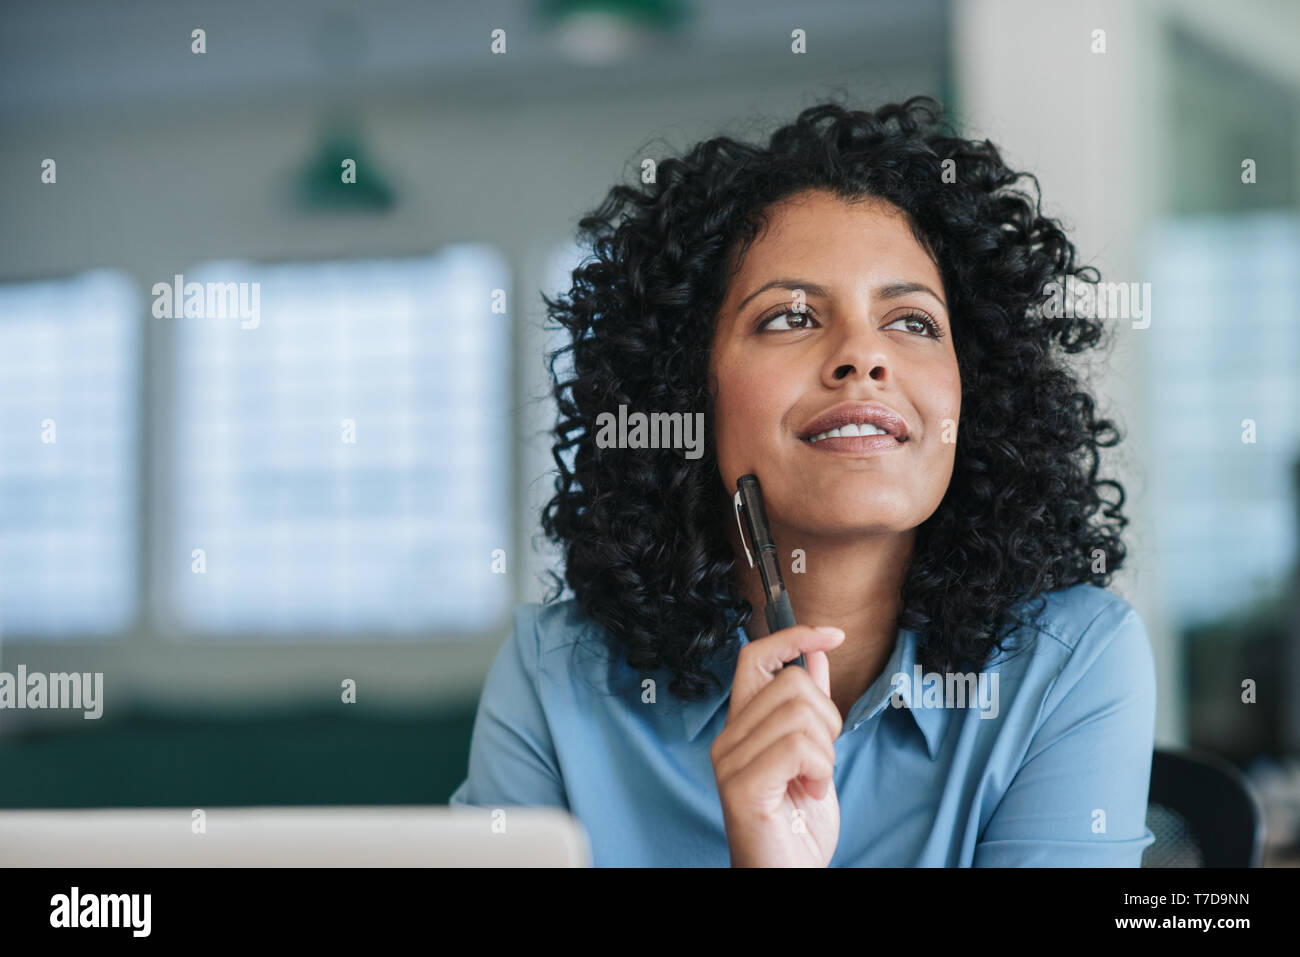 Smiling young businesswoman deep in thought at her office desk - Stock Image